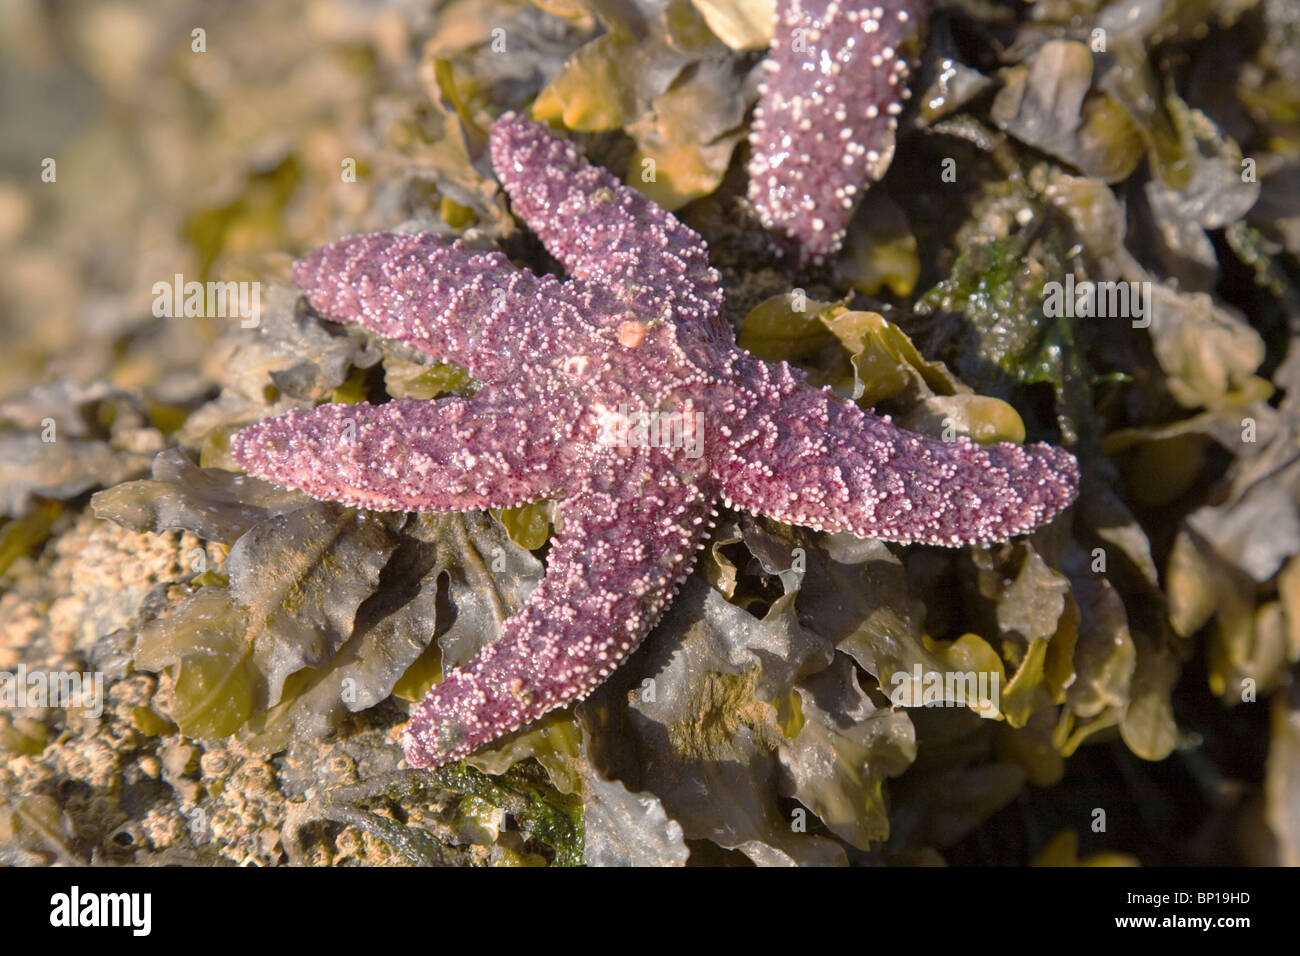 A purple starfish on a bed of seaweed found on a cruise in the Alaskan Inside Passage, Alaska, USA. - Stock Image